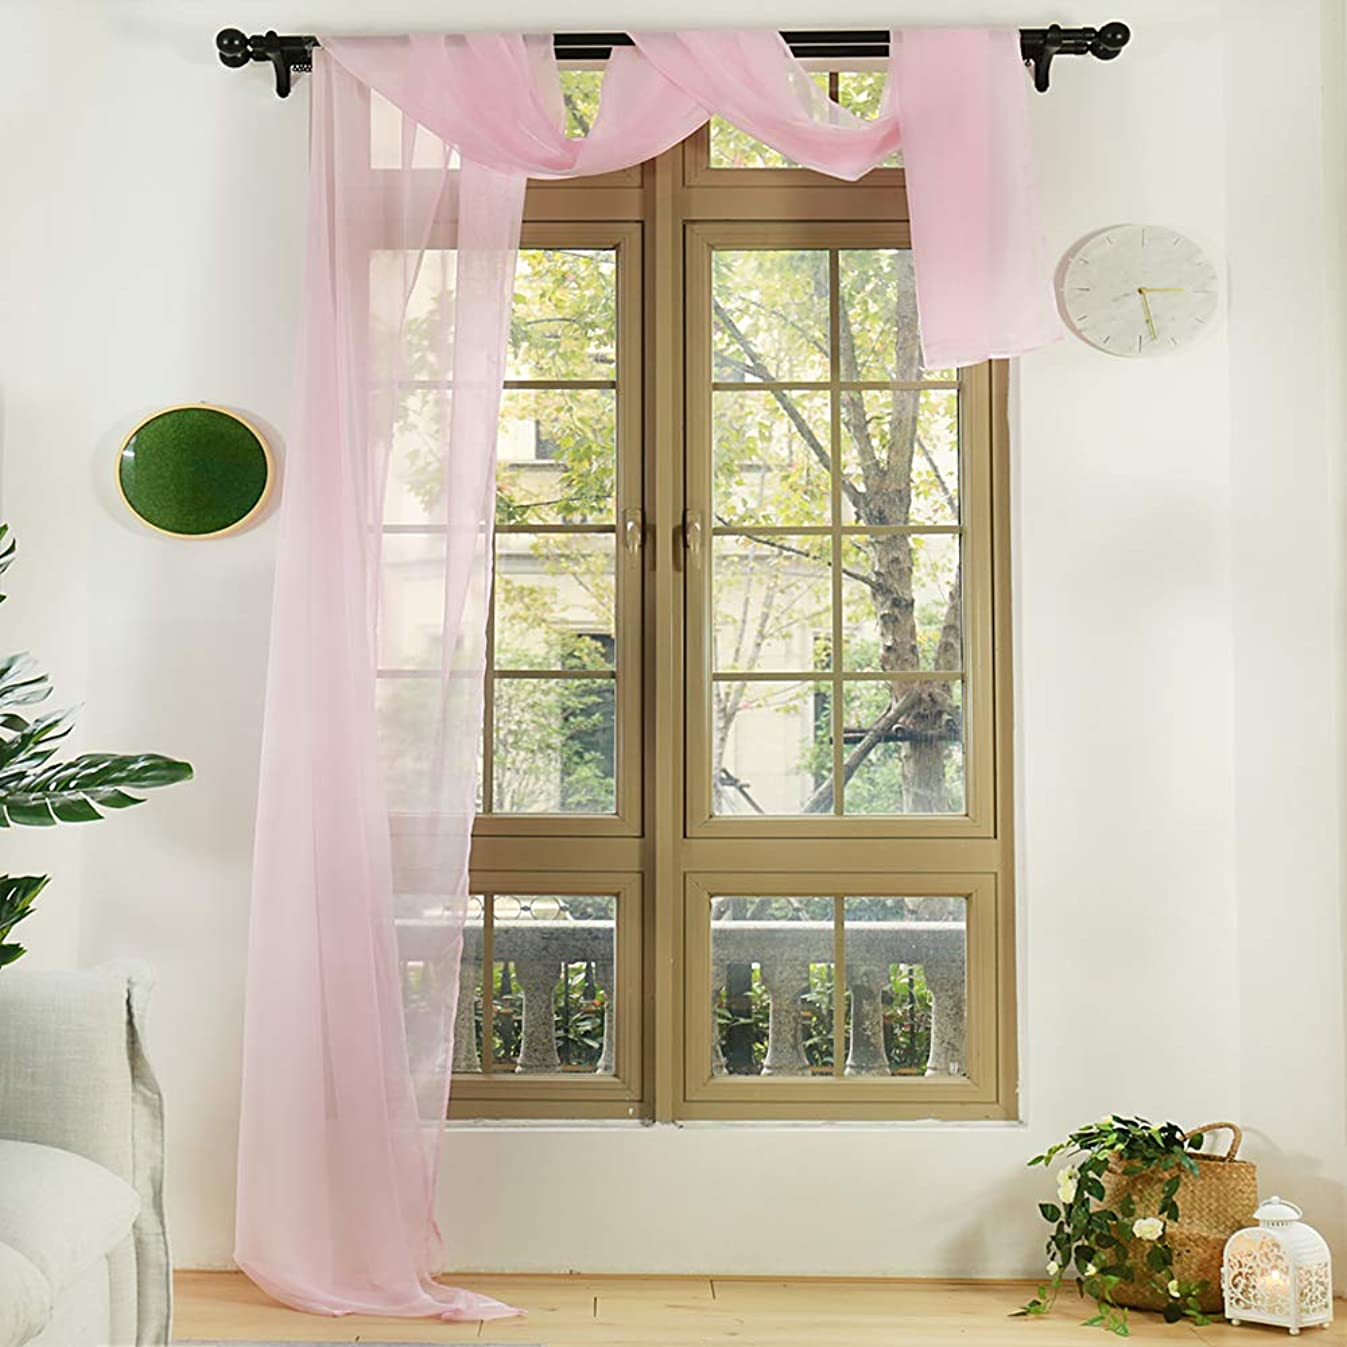 Anjee Pink Window Scarf Extra Long 216 Inches, Semi Sheer Valance Window Treatment Voile Curtain Drapes, Elegant Home Decor for Girls' Bedroom, Party and Wedding (1 Panel, W52 X L216 inches)